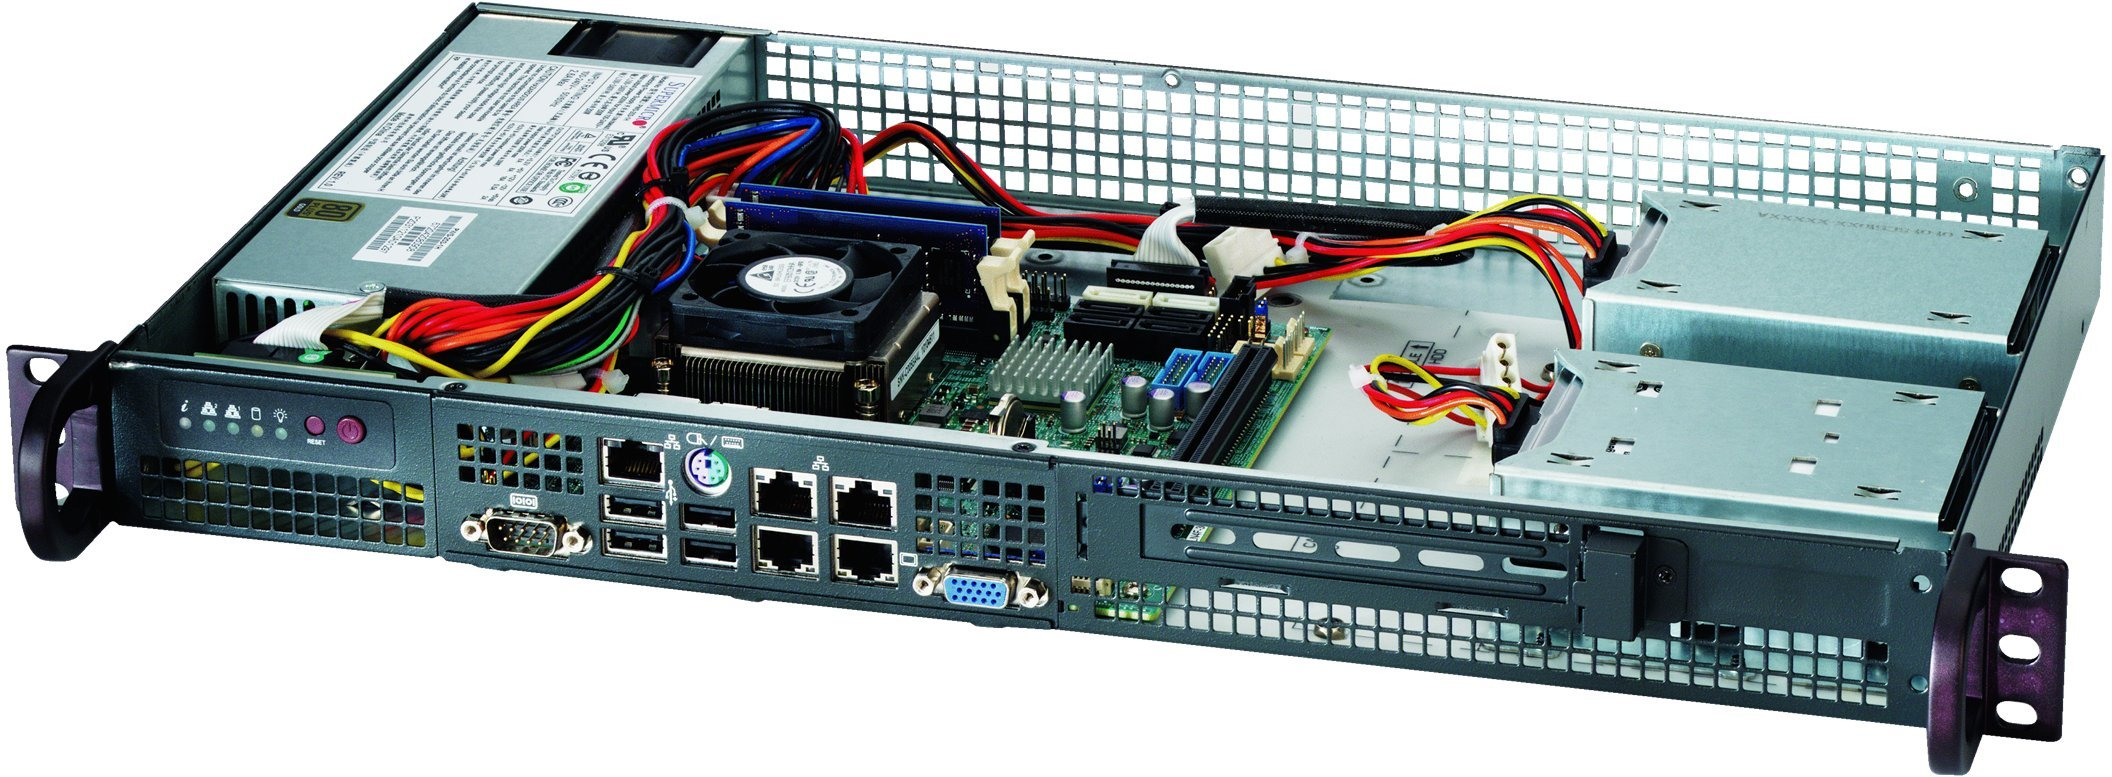 Supermicro Rack Mount Server Chassis CSE-505-203B